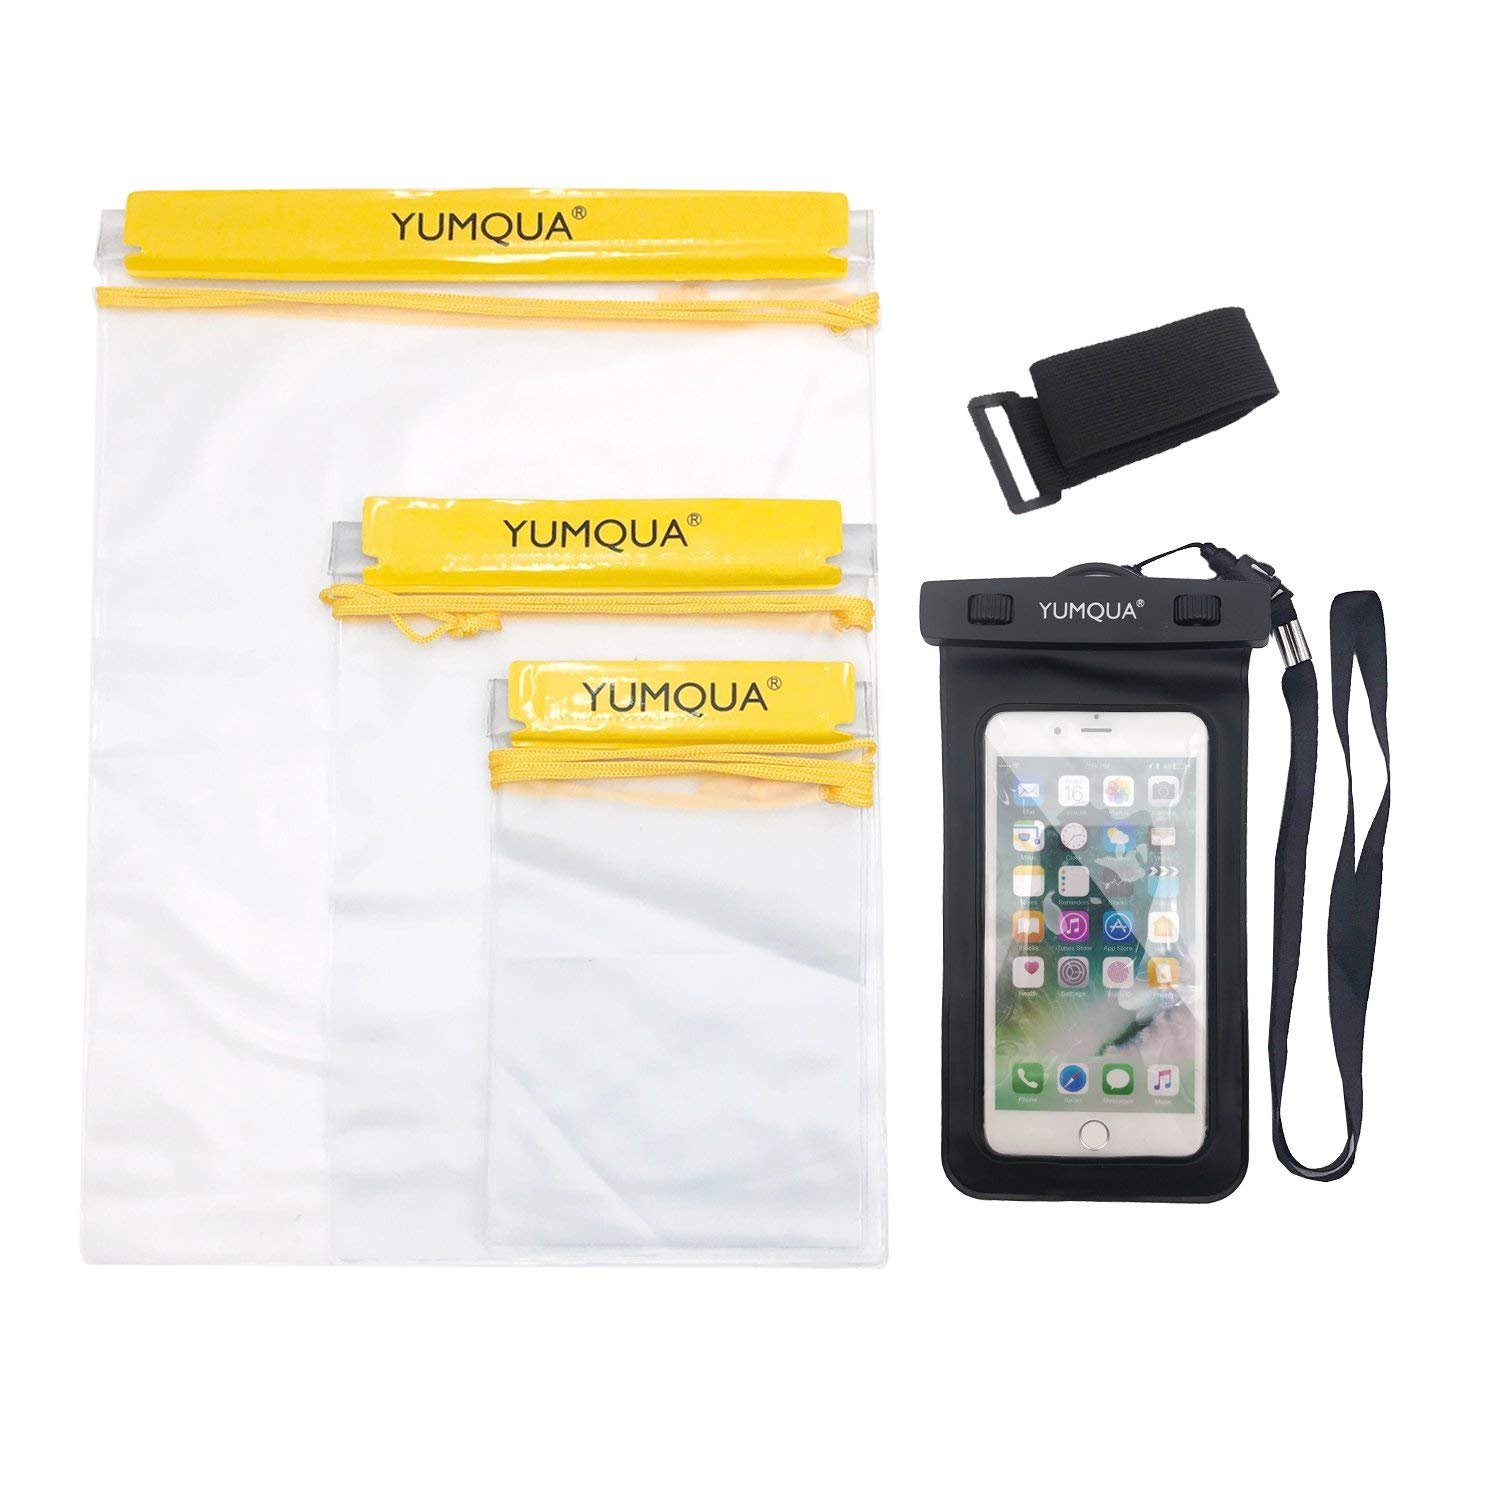 YUMQUA Clear Waterproof bags, Water Tight Cases Pouch Dry Bags + Waterproof Phone Case with Armband For Camera Mobile Phone Maps Backpack Kayak Military Boat Oars Document Holder - 4 Piece Set Dry bag-WPC-04-FBA